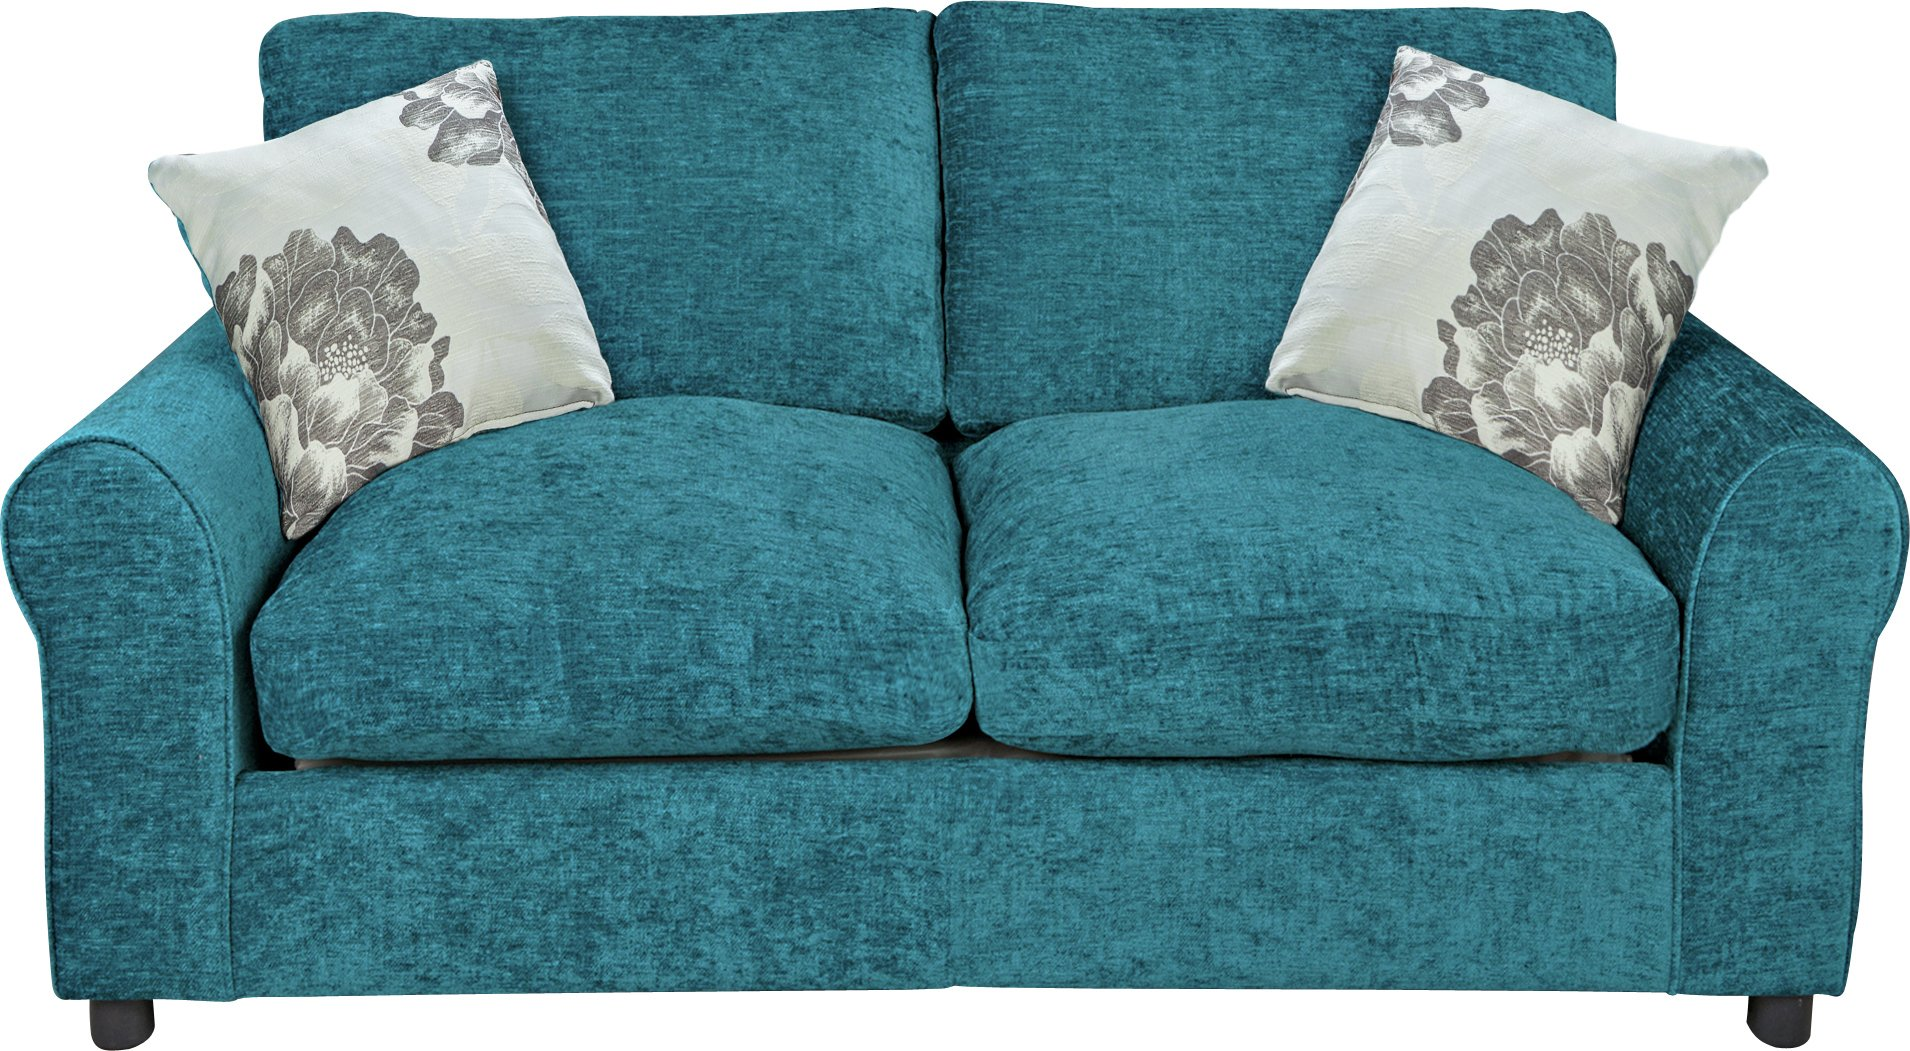 Buy Home Tessa 2 Seater Fabric Sofa Bed Teal At Argos Co